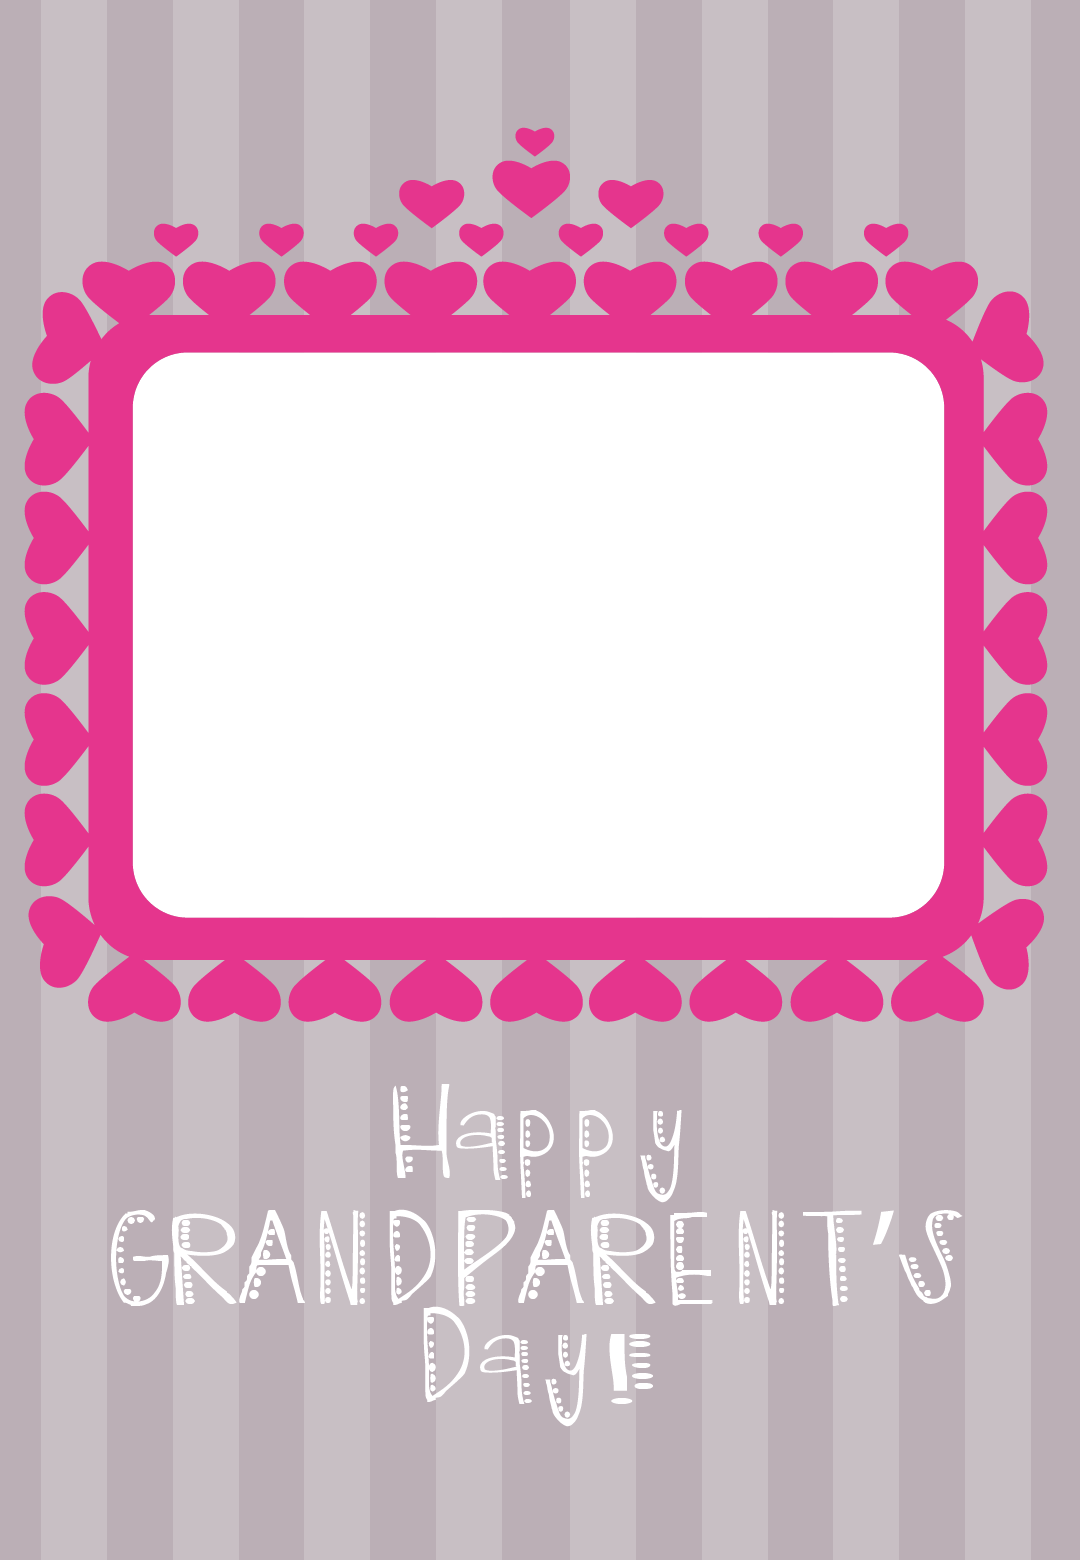 Free Printable The Best Grandparents Ever Greeting Card Grandparents Day Cards Happy Grandparents Day Grandparents Day